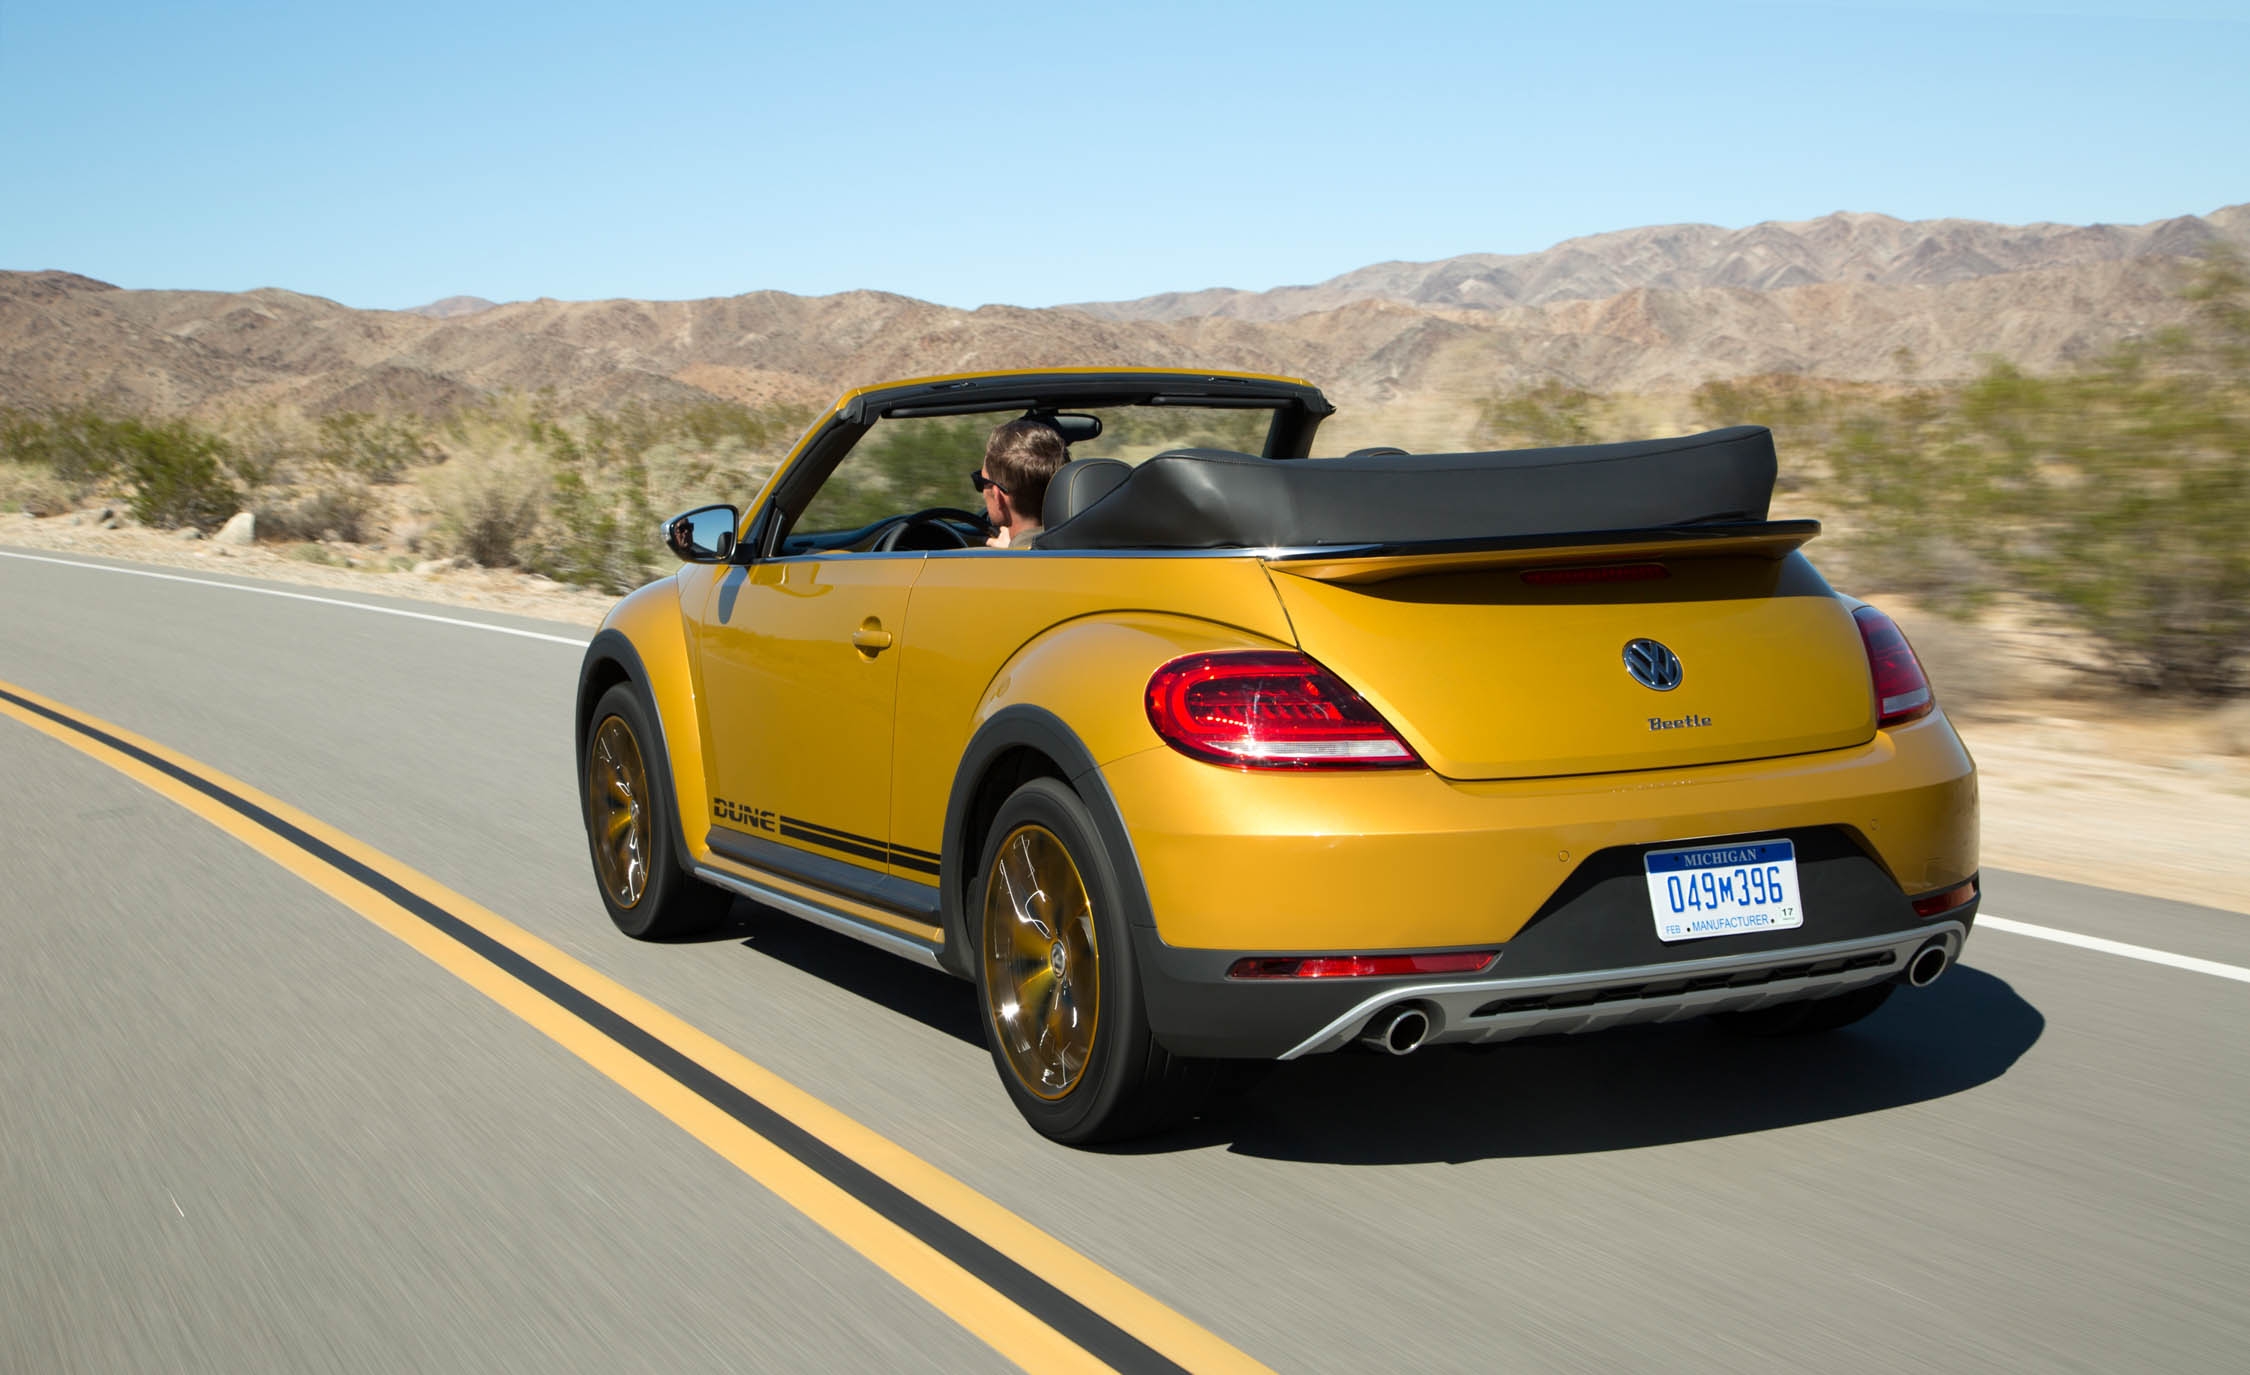 2016 Volkswagen Beetle Dune Convertible Test Rear (Photo 8 of 32)